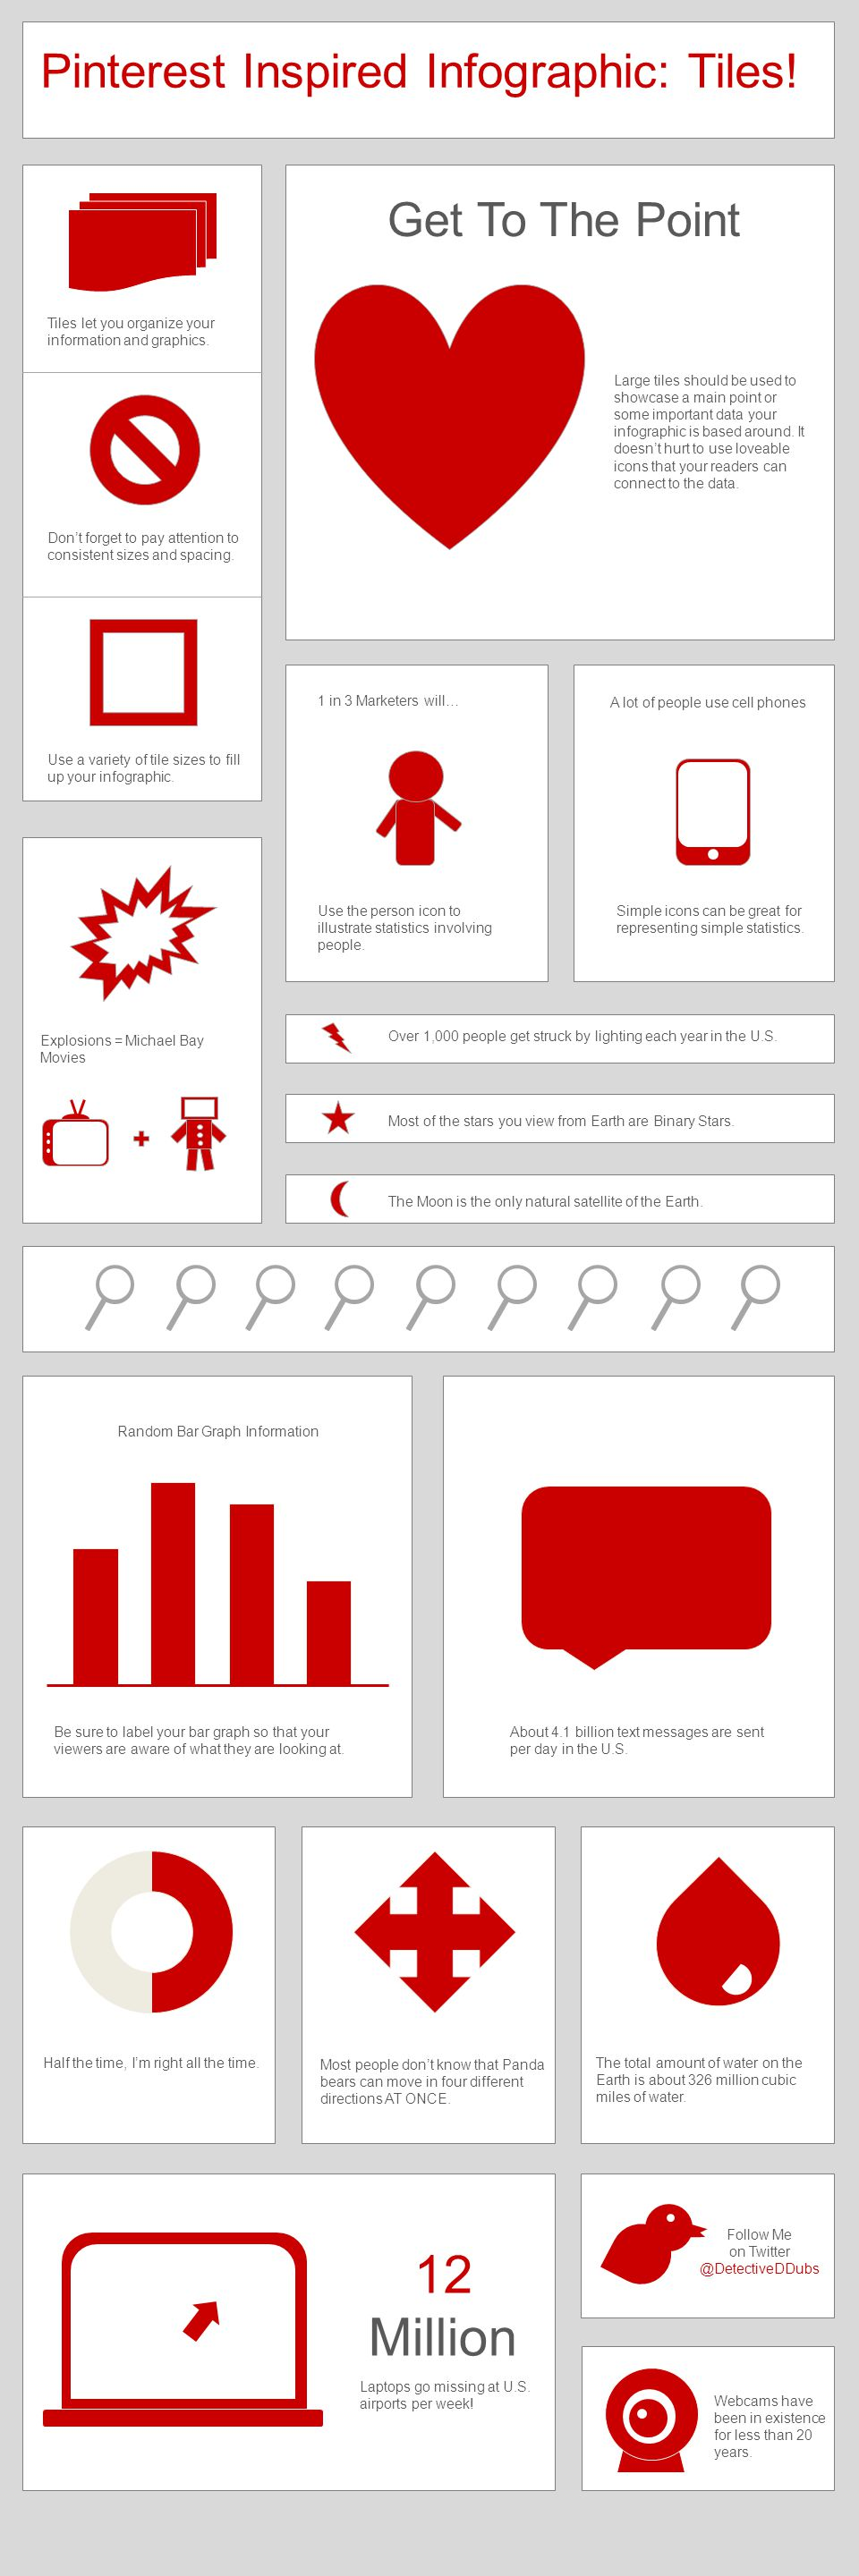 12 Million Pinterest Inspired Infographic: Tiles! Get To The Point